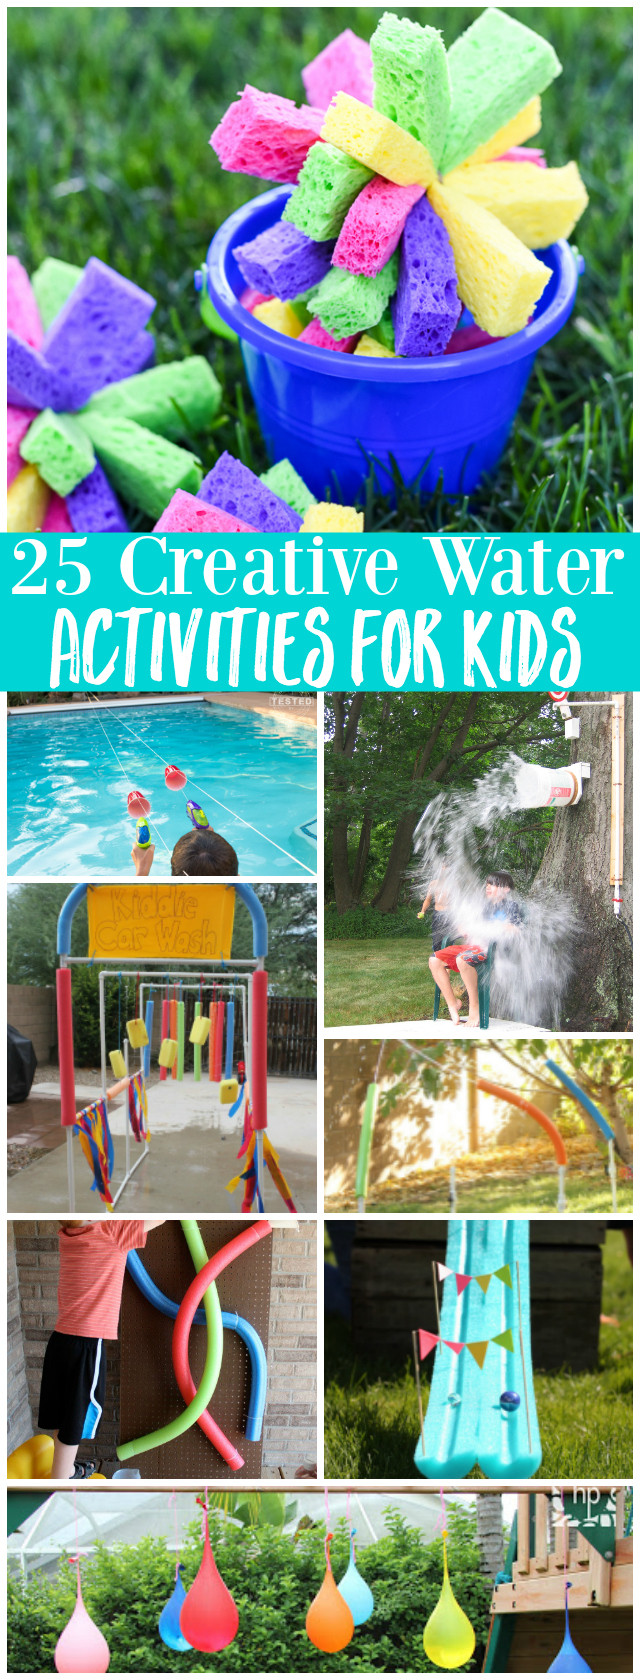 Fun Ideas For Kids  25 Creative Water Activities for Kids